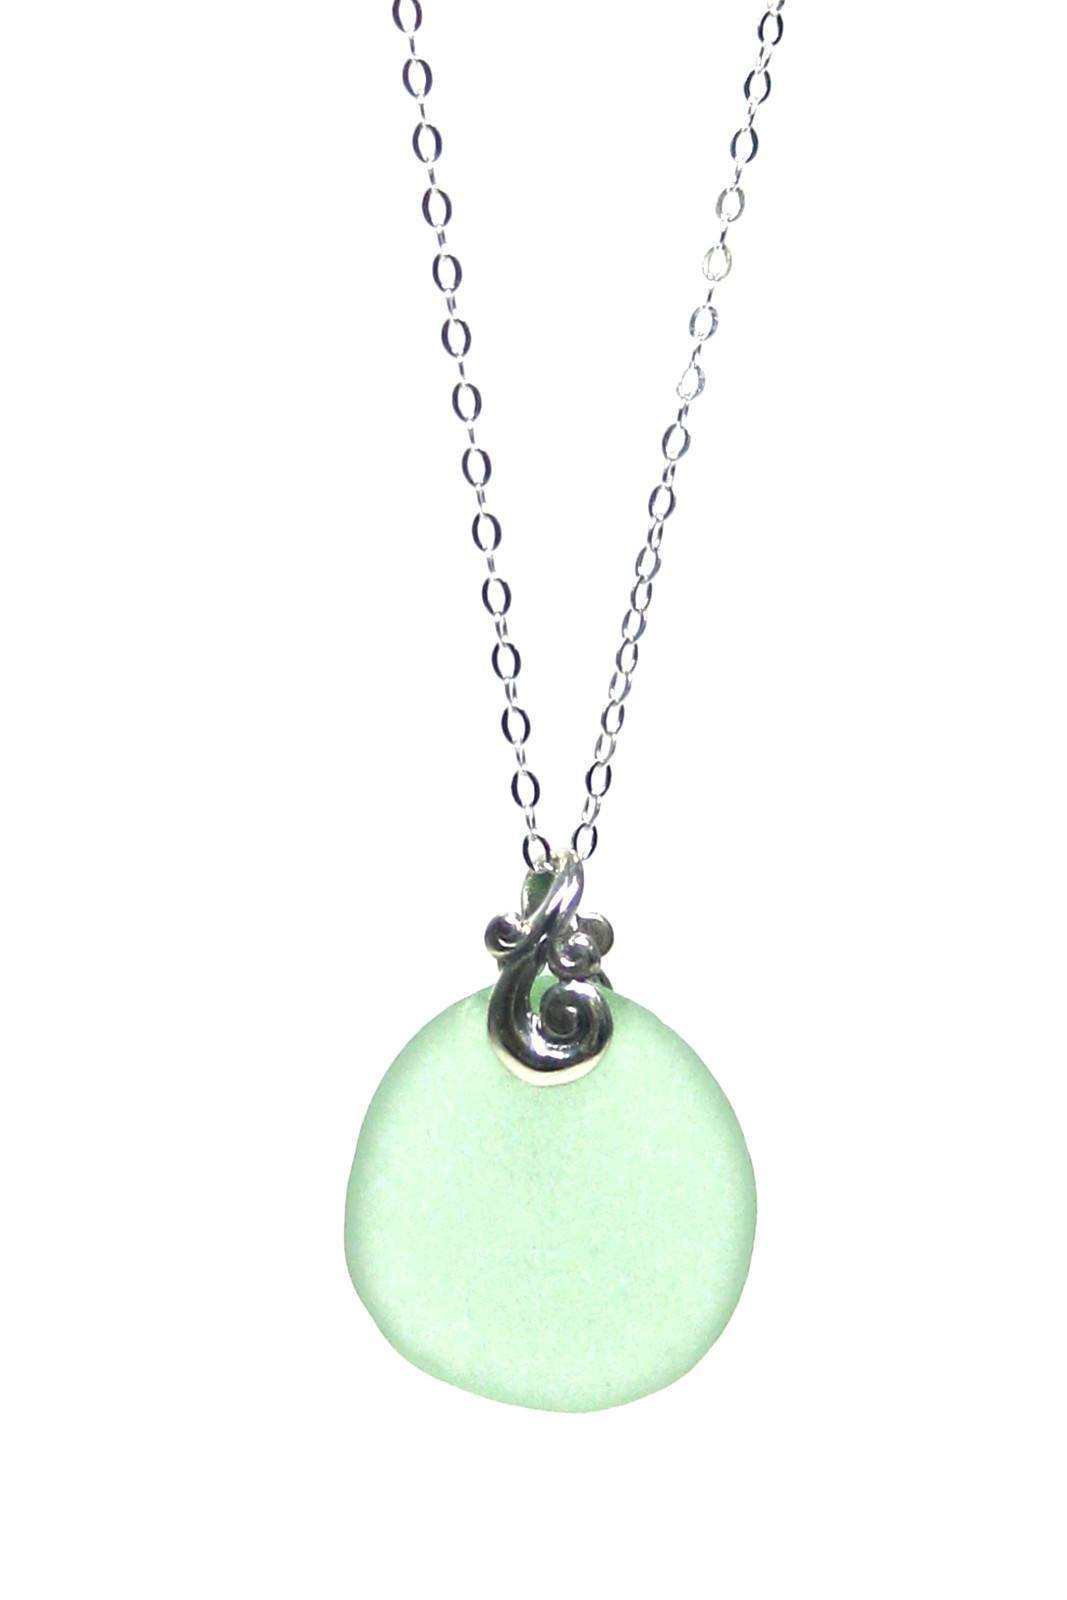 Womens>Accessories>Jewelry - Ocean Waves Sea Glass Necklace